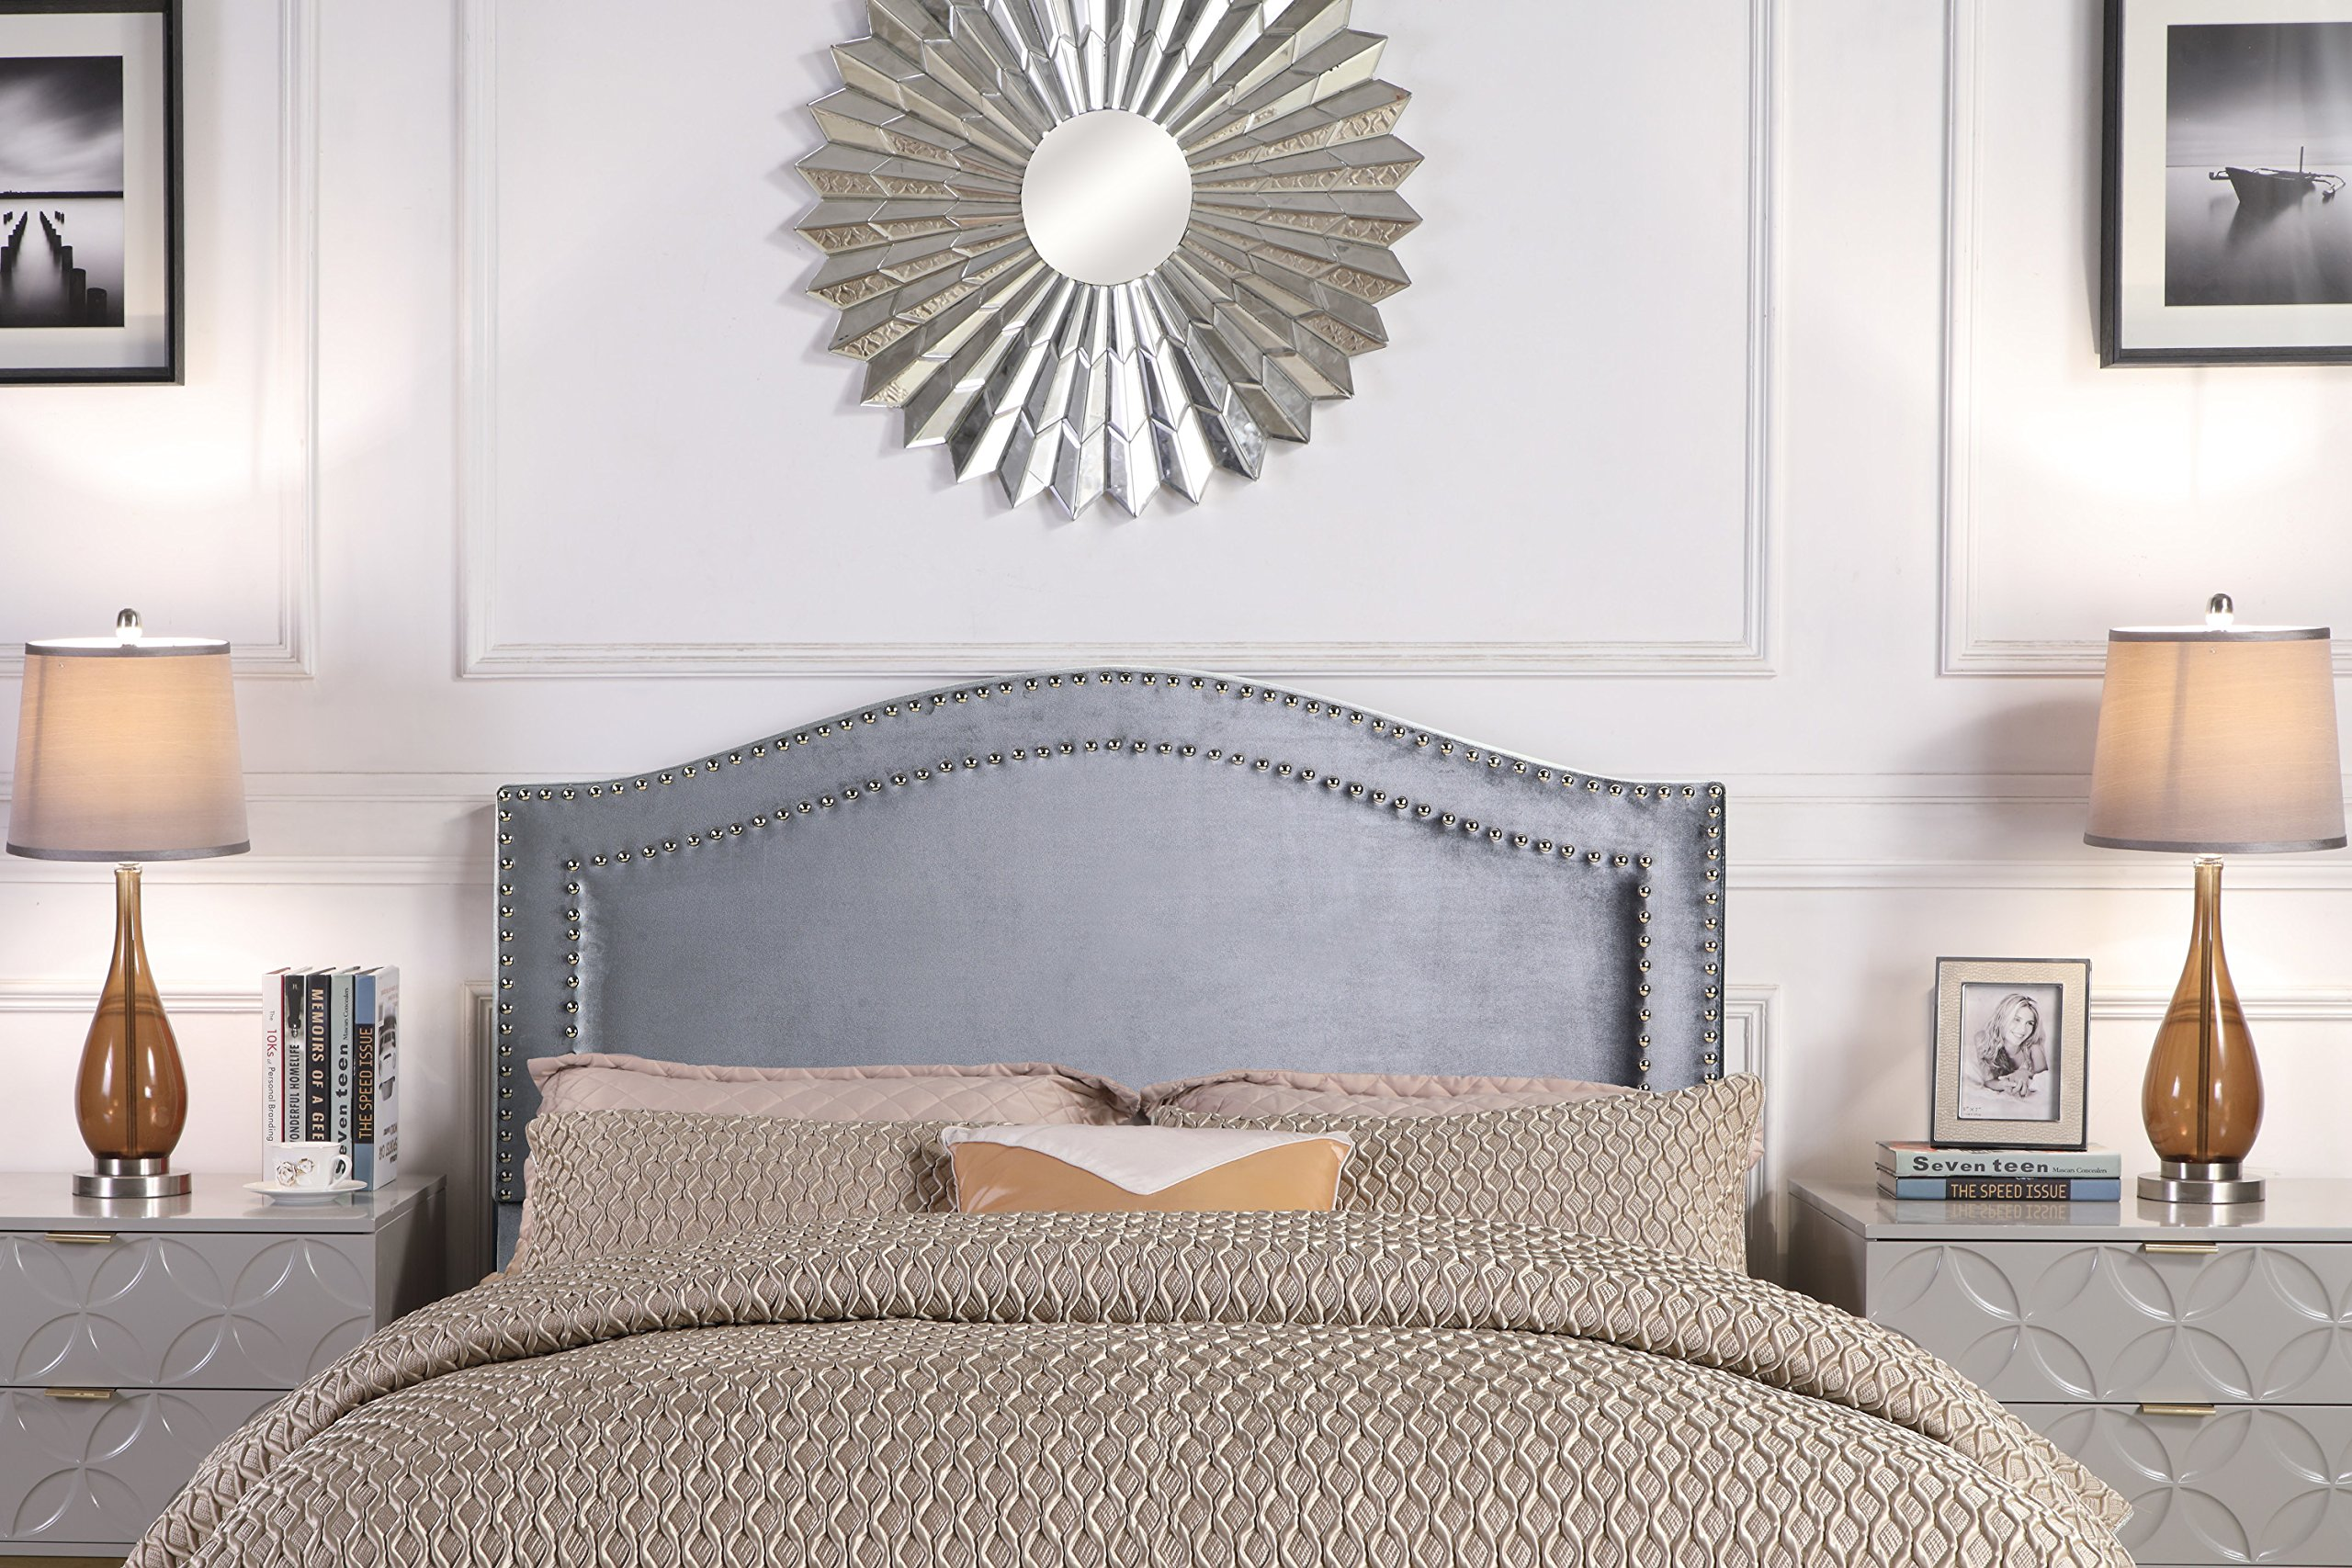 Iconic Home FHB9064-AN Tal. Headboard Velvet Upholstered Double Row Silver Nailhead Trim Modern Transitional, Twin, Gray by Iconic Home